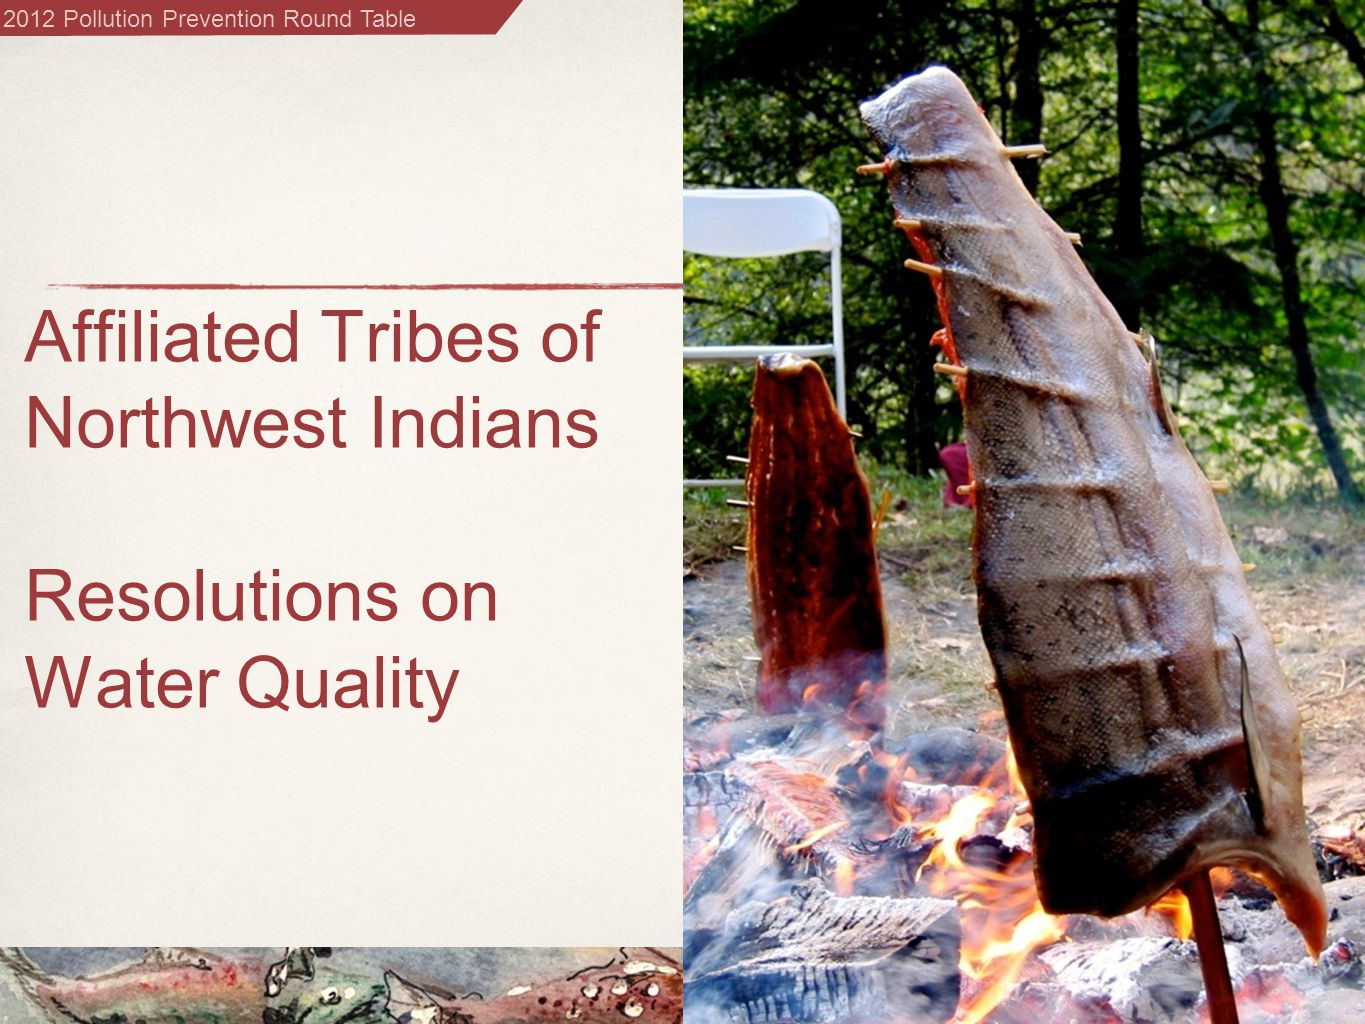 2012 Pollution Prevention Round Table Affiliated Tribes of Northwest Indians Resolutions on Water Quality